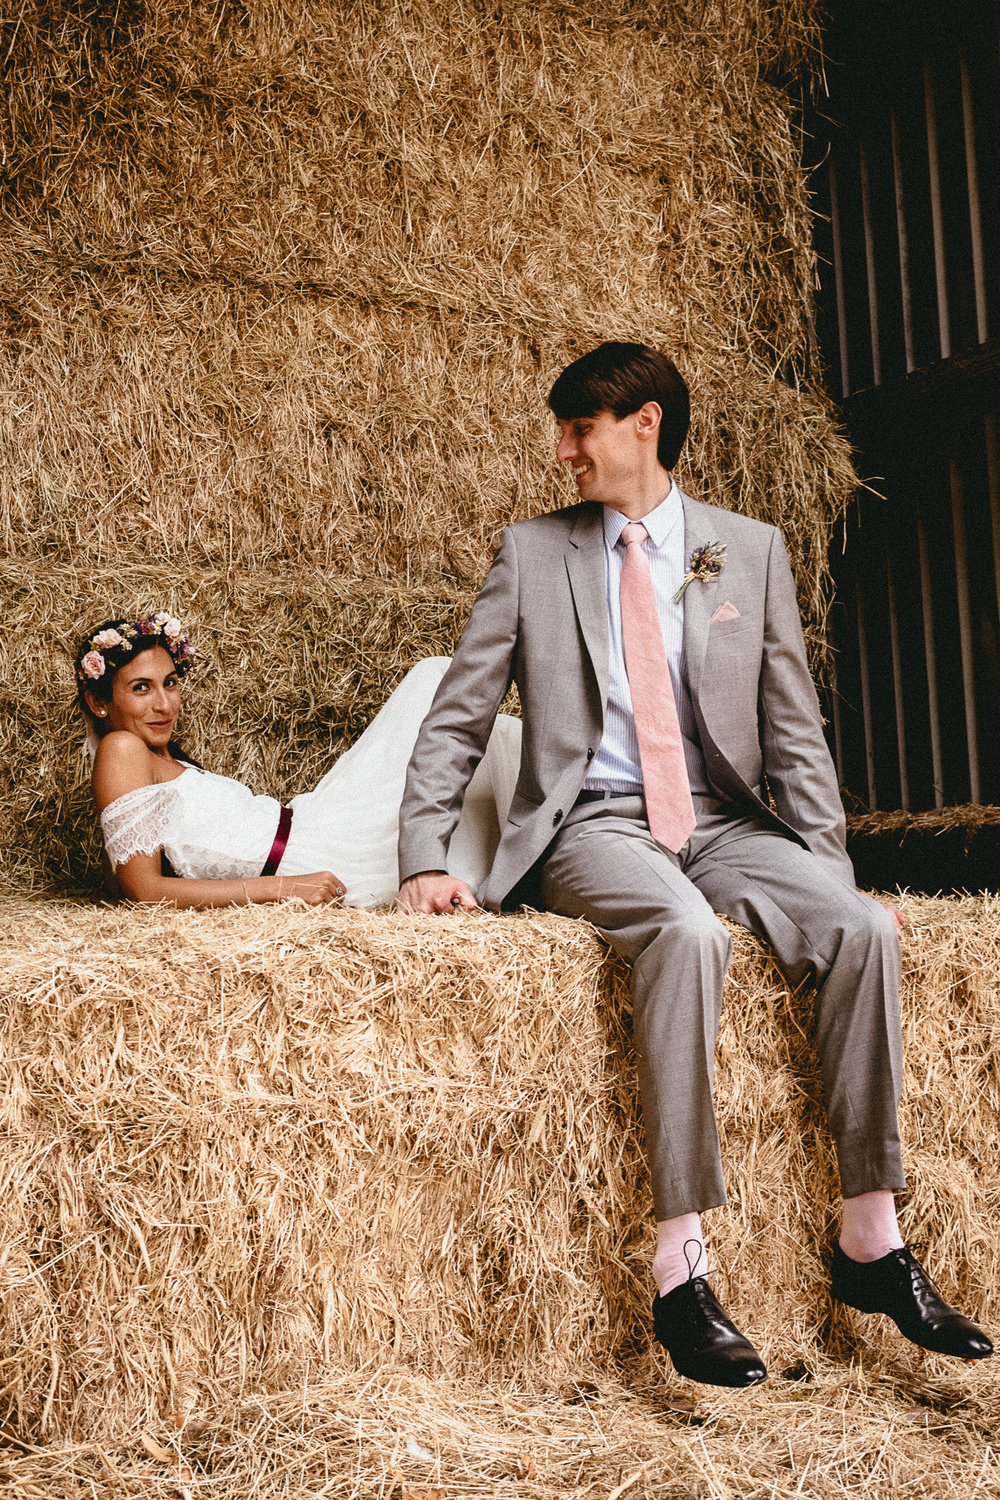 Haystack Couple Photo | Berkshire Wedding Planner